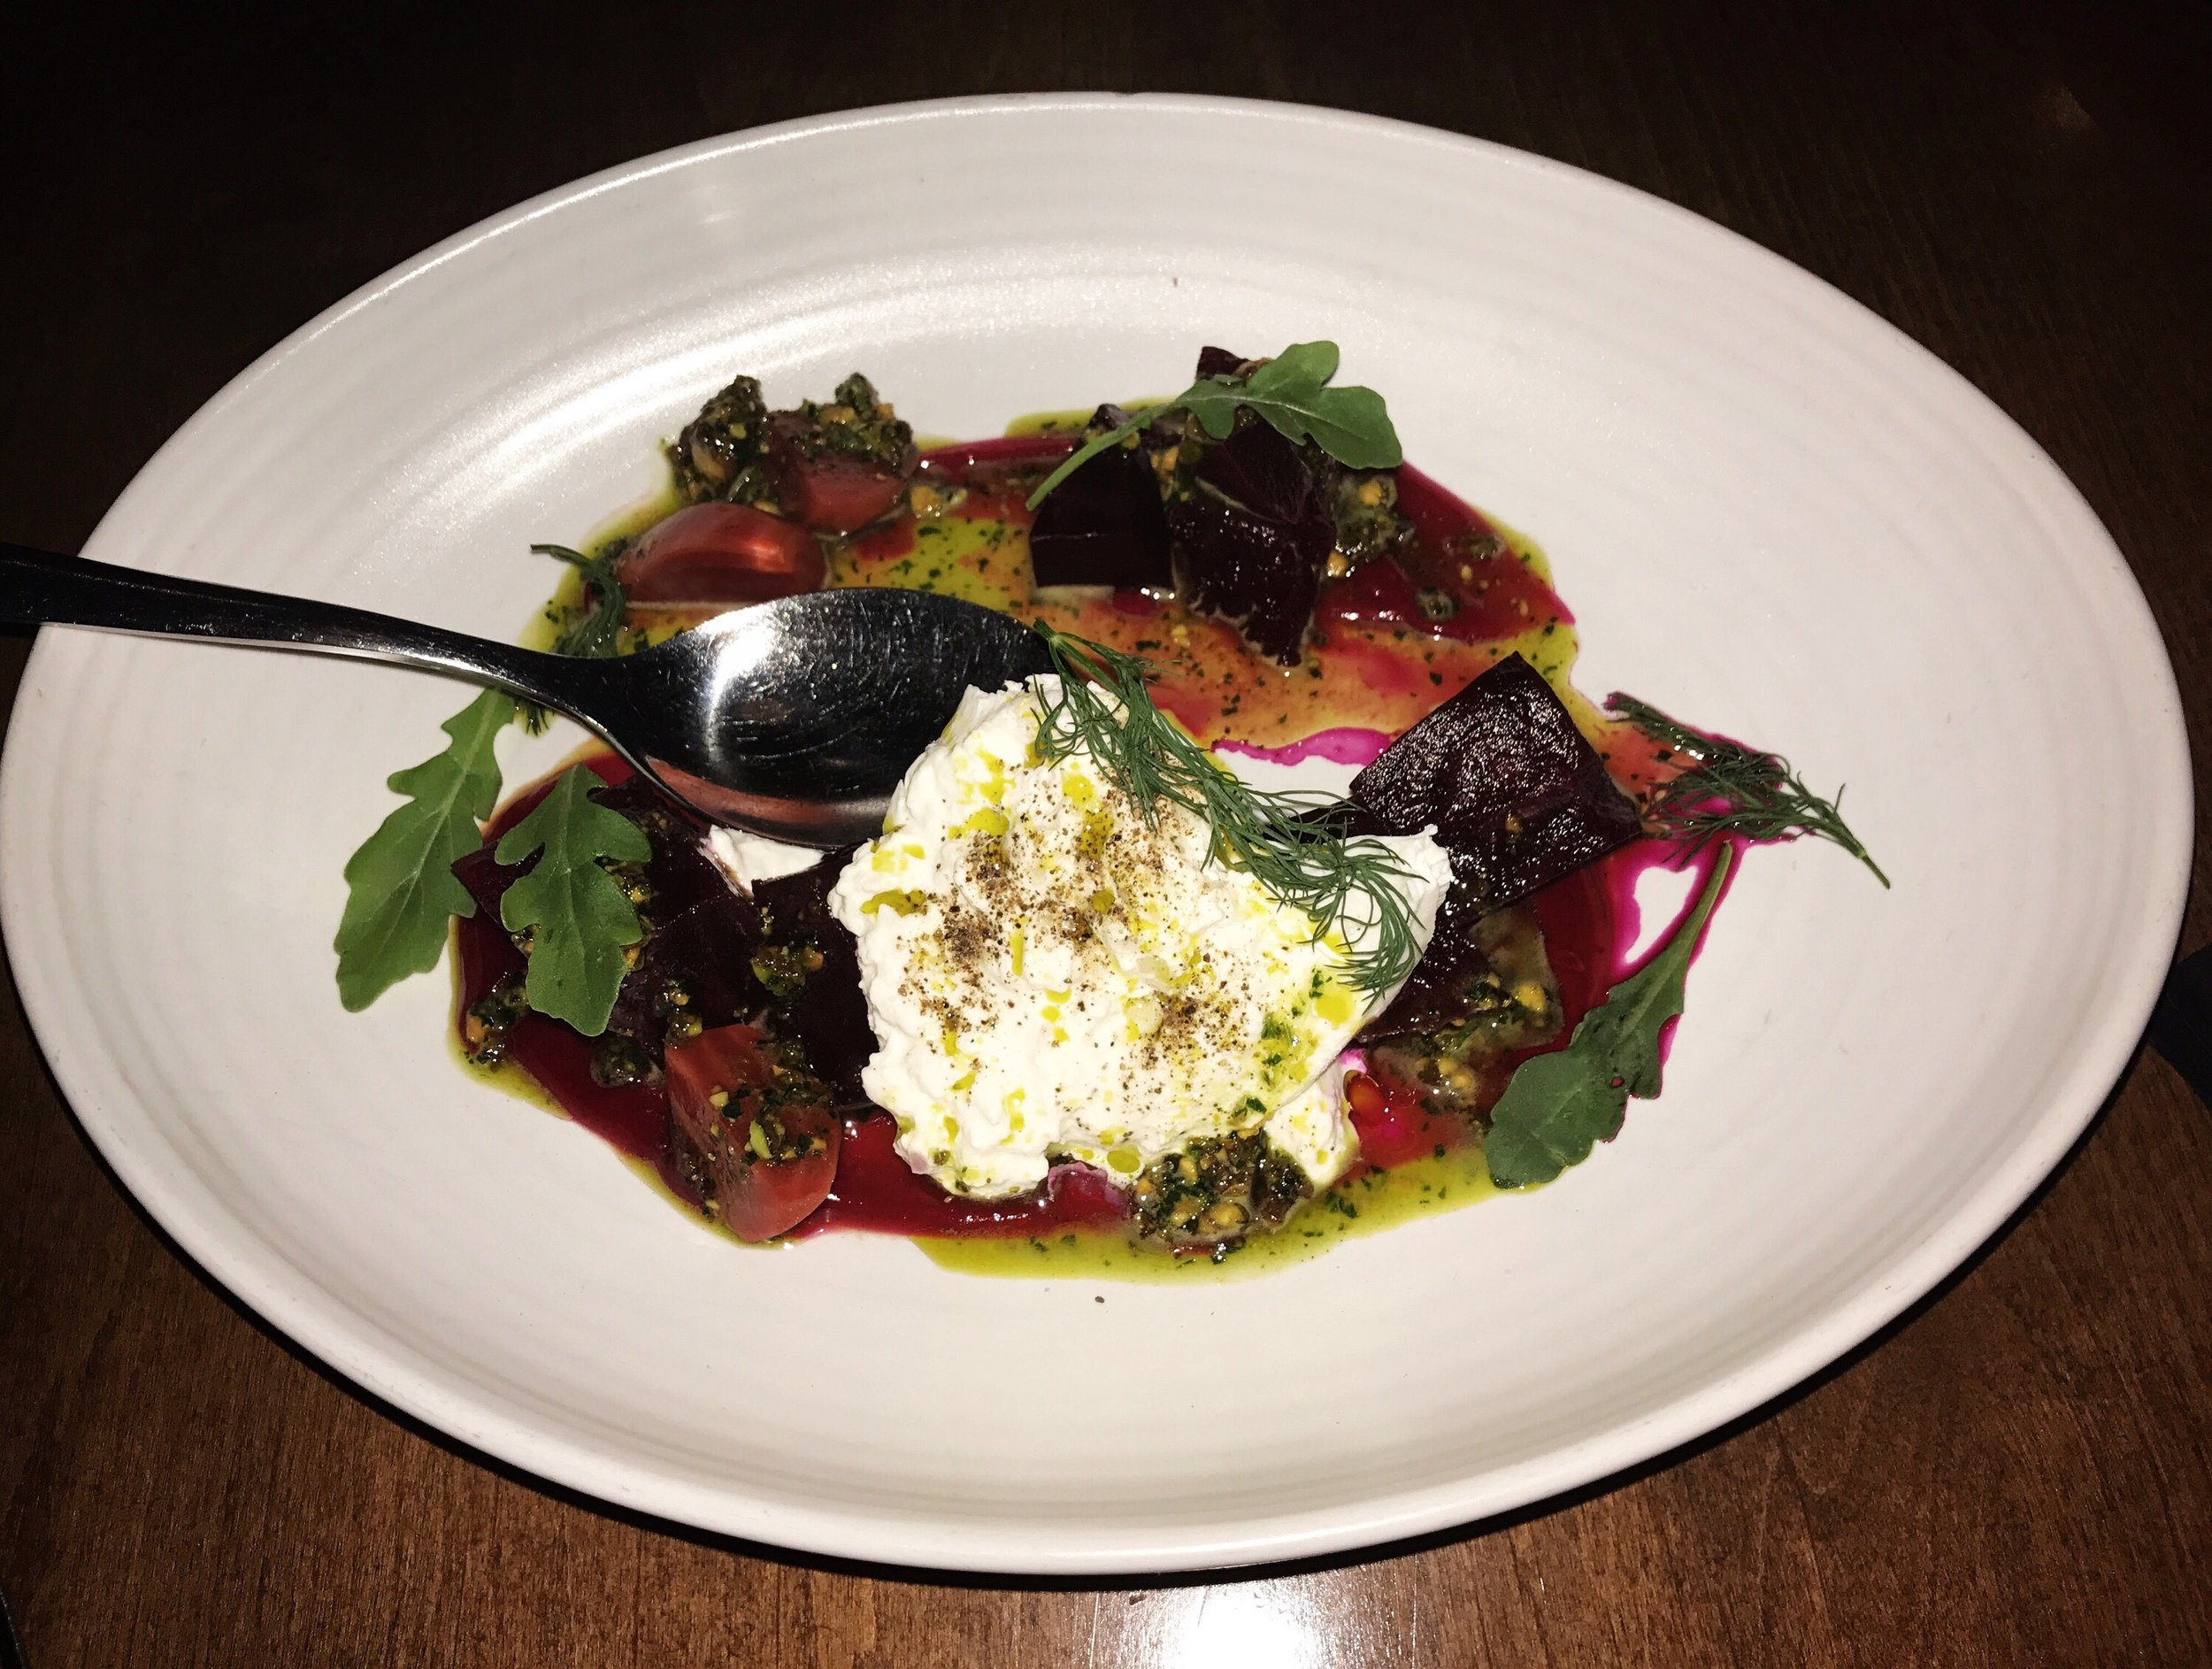 The Burrata.